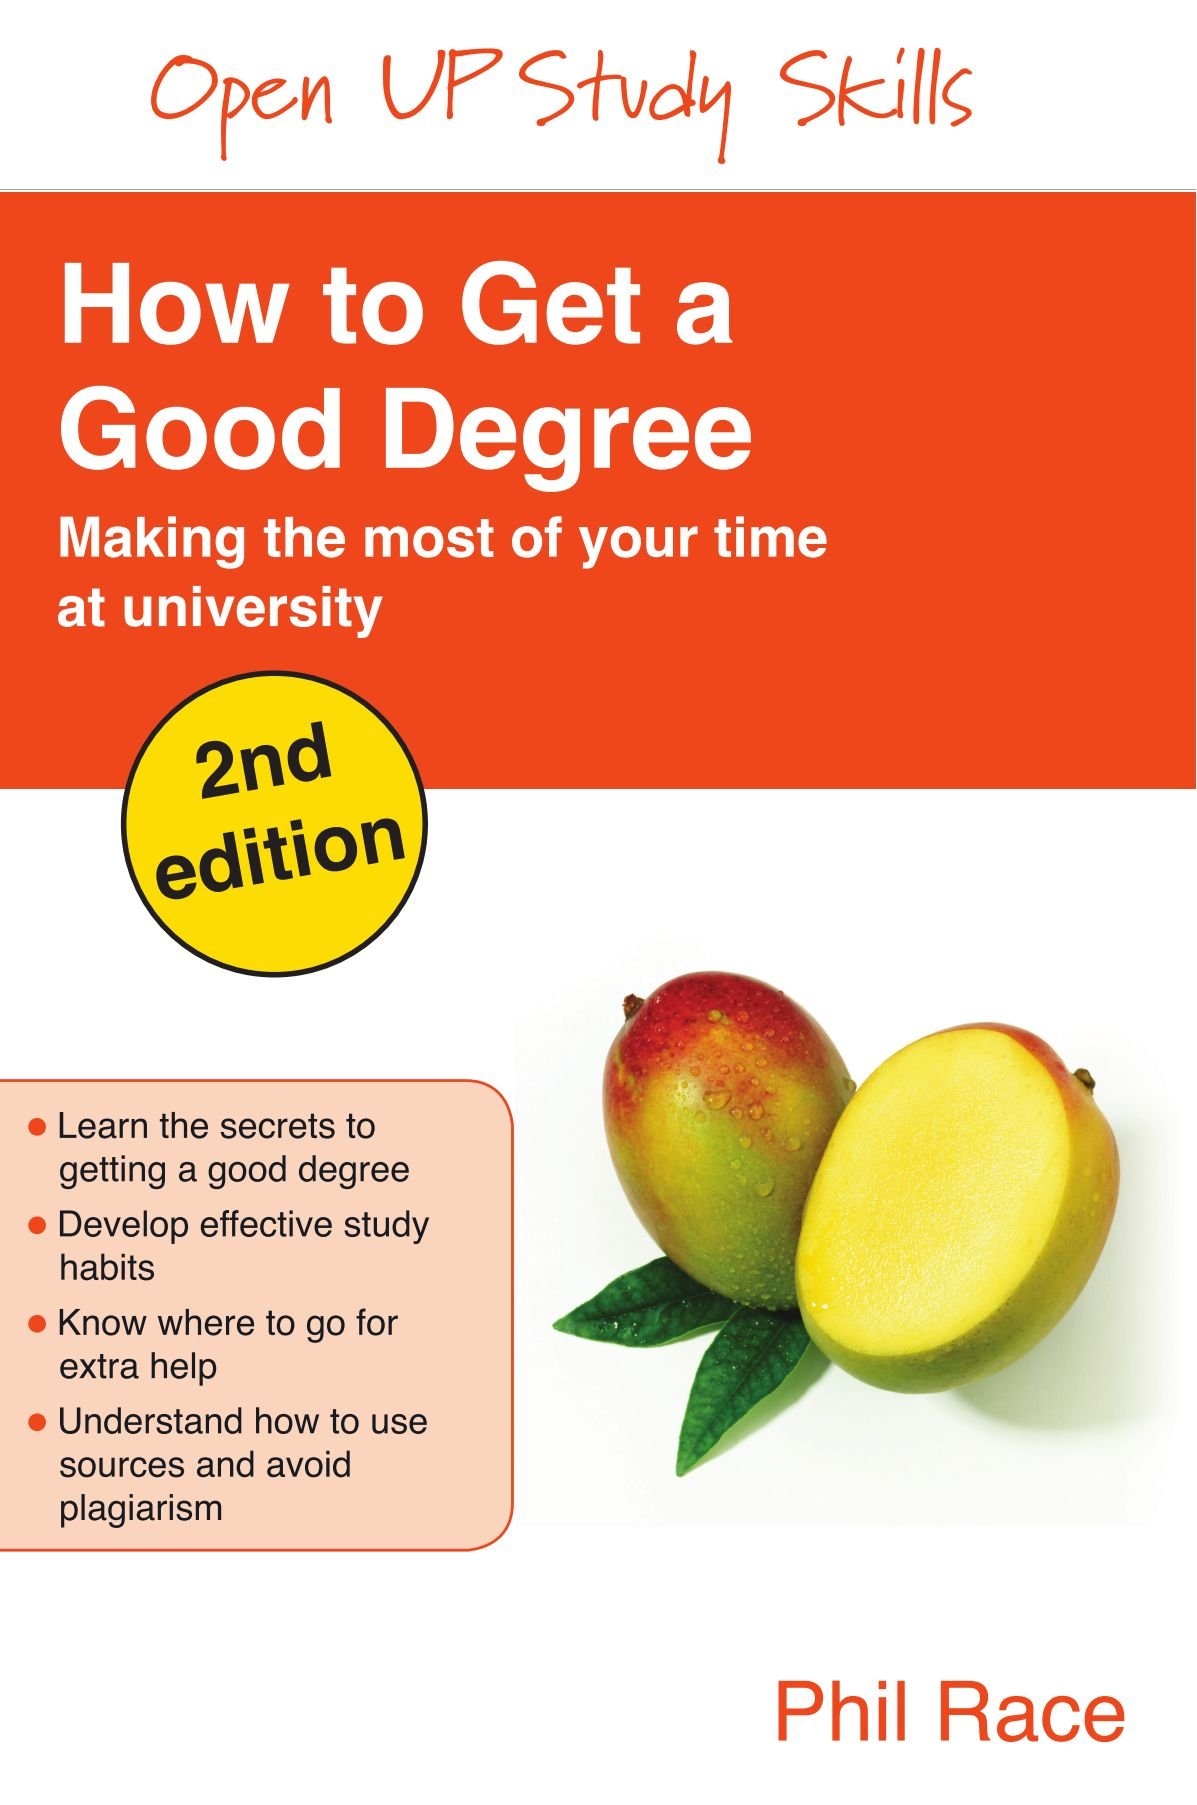 Best degree to get a job abroad